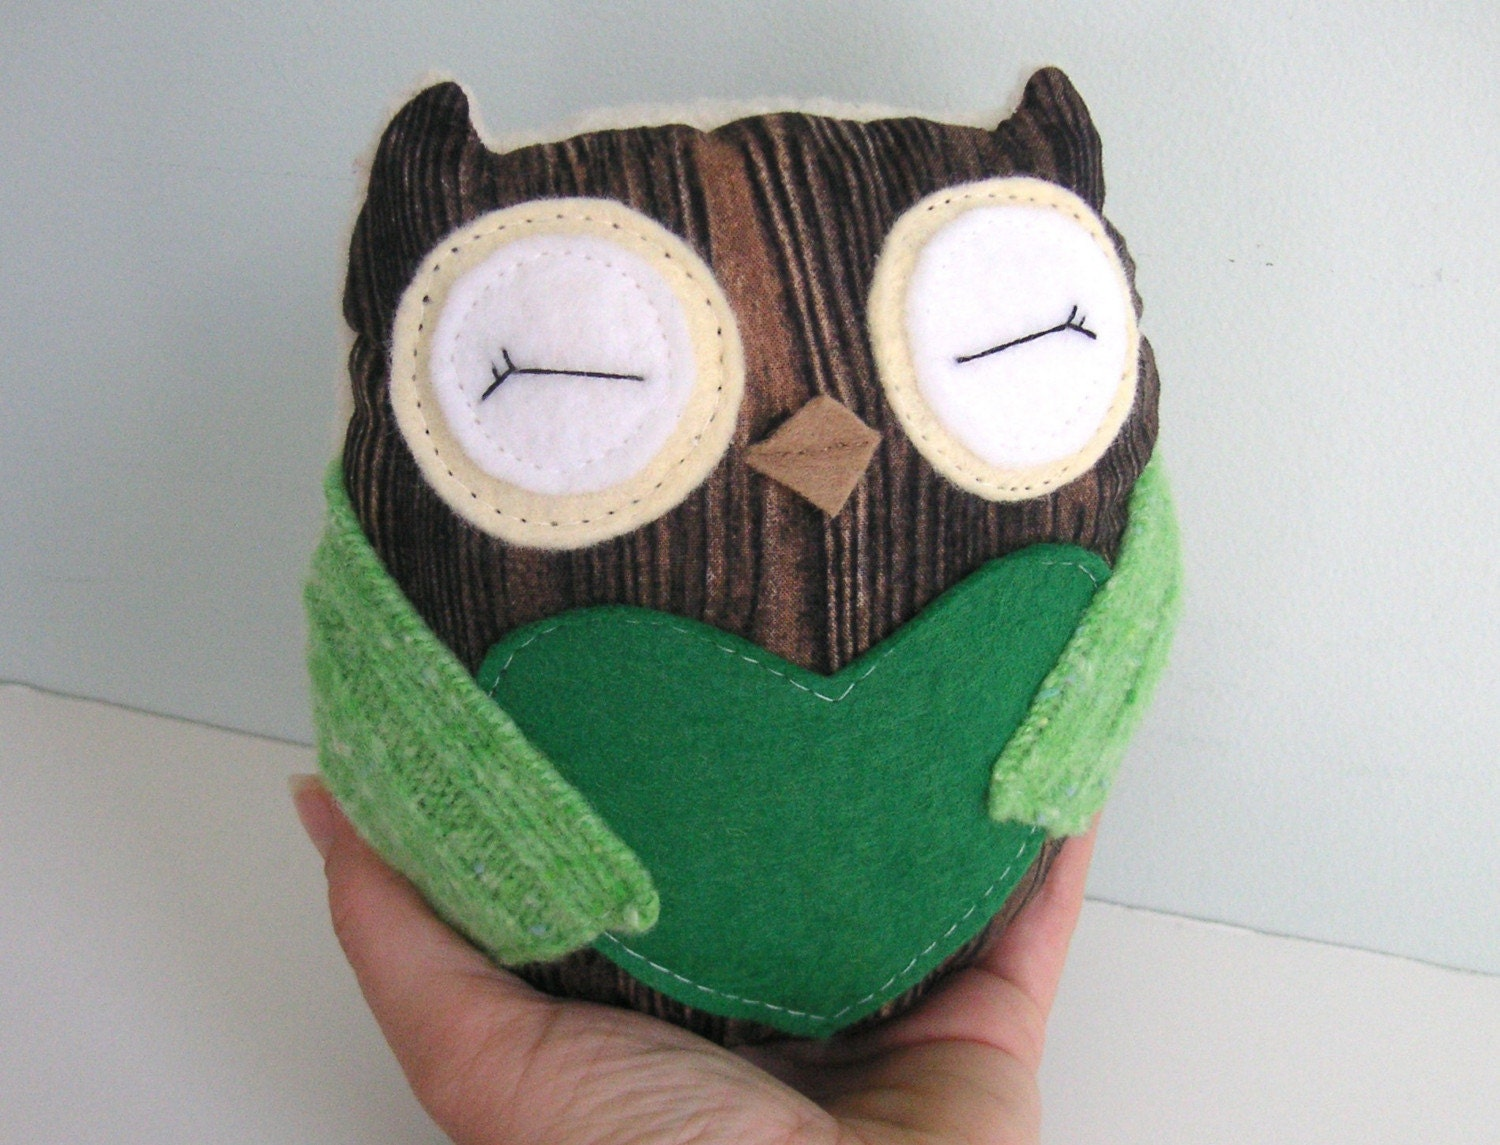 Tiny Wee Hoot Owl - Nature Lovers - Eco Friendly Kids Plush Doll with Secret Pocket